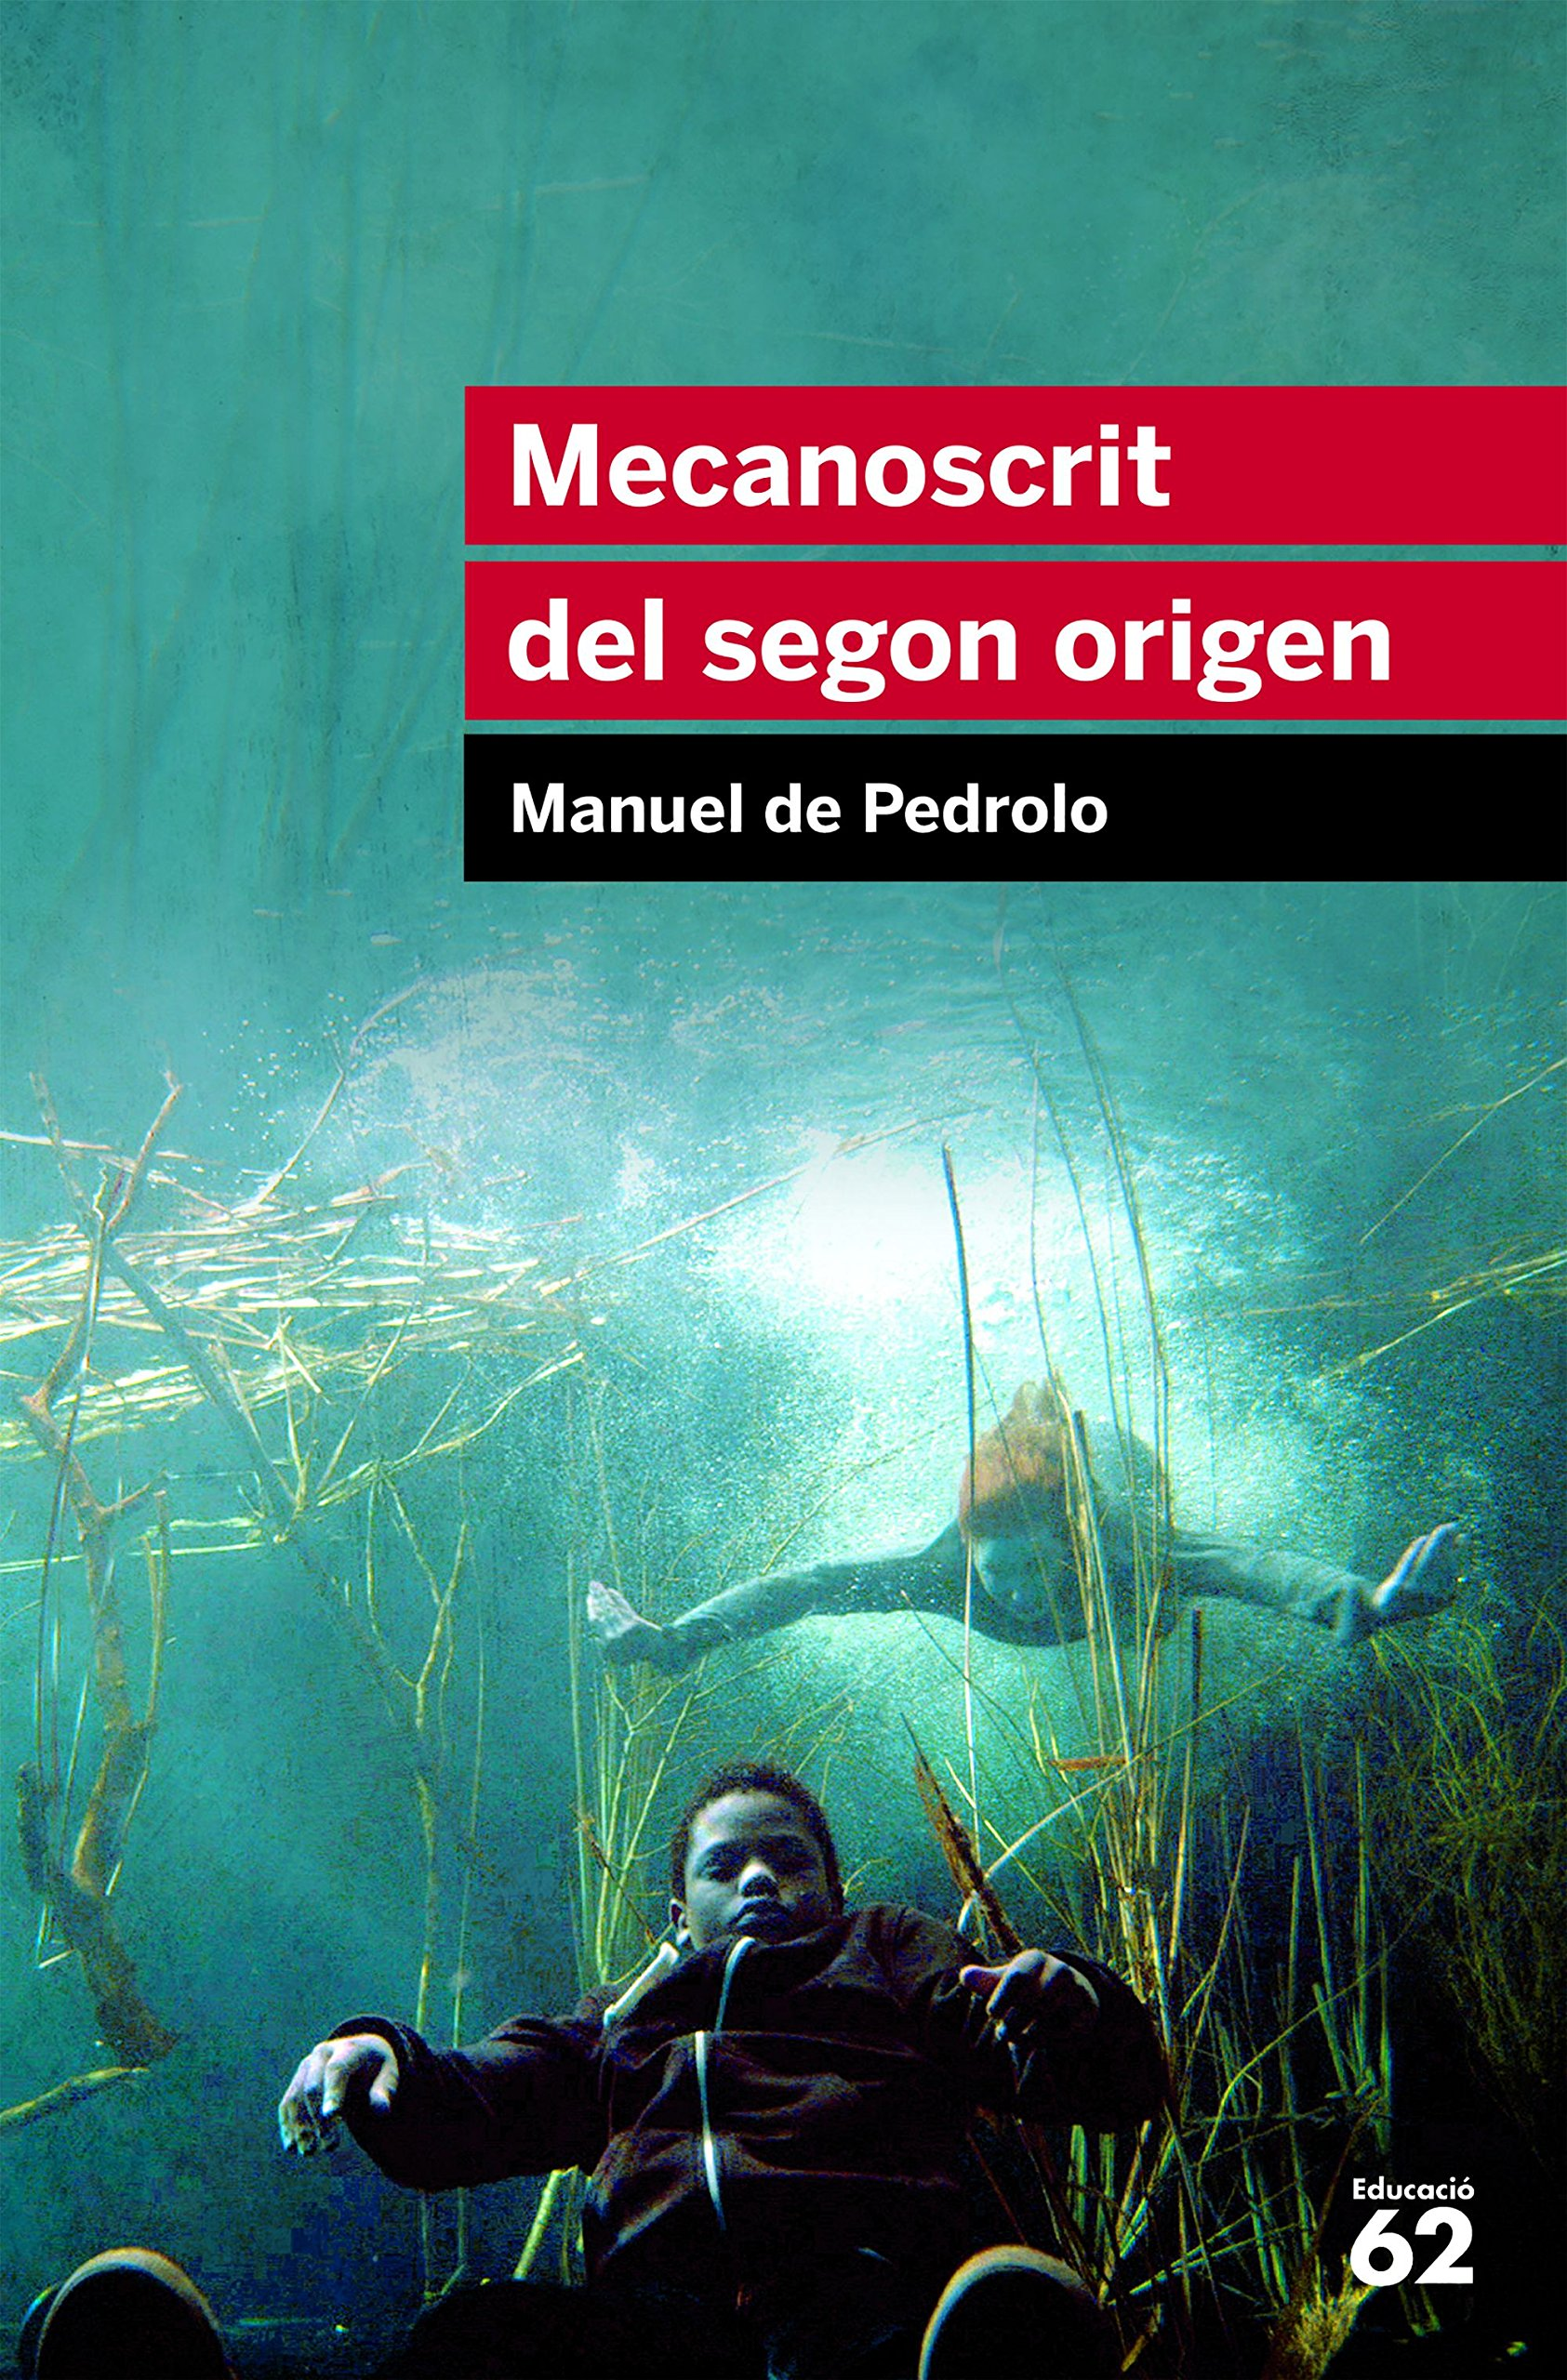 Mecanoscrit Del Segon Origen (Educació 62) Tapa blanda – 4 jul 2013 Manuel de Pedrolo Educaula 8415192878 Classic science fiction